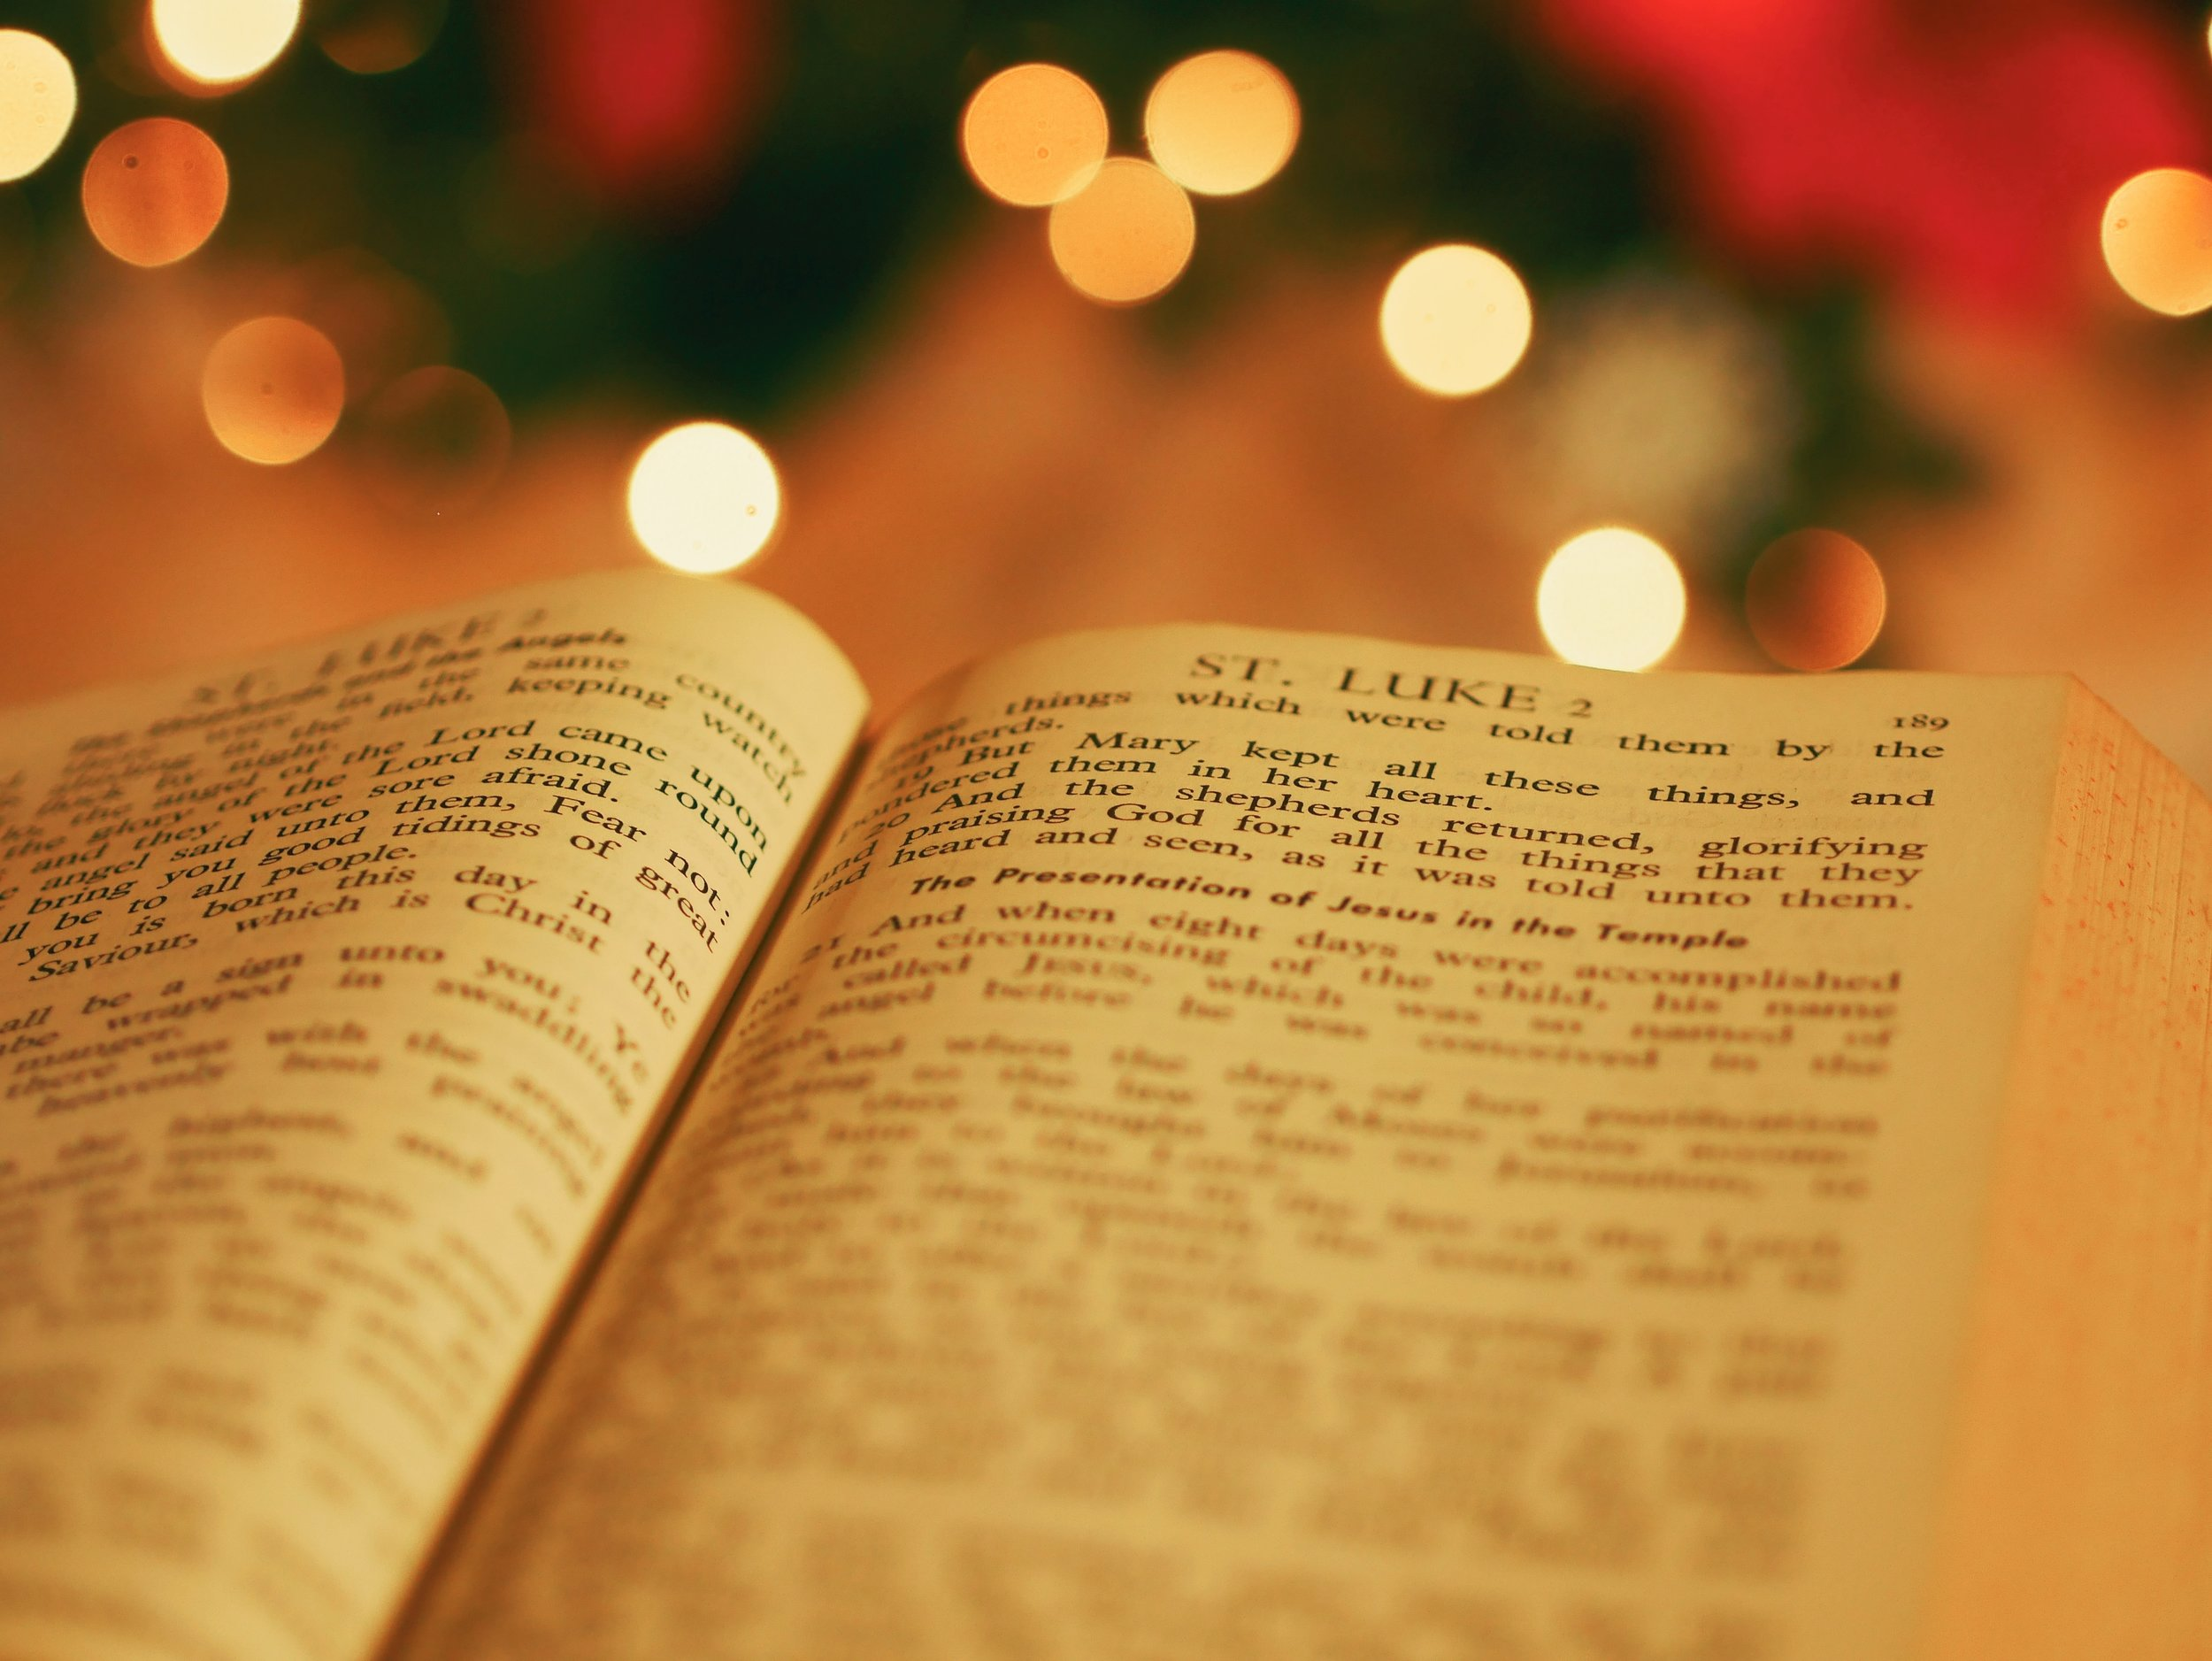 the bible region comes to light